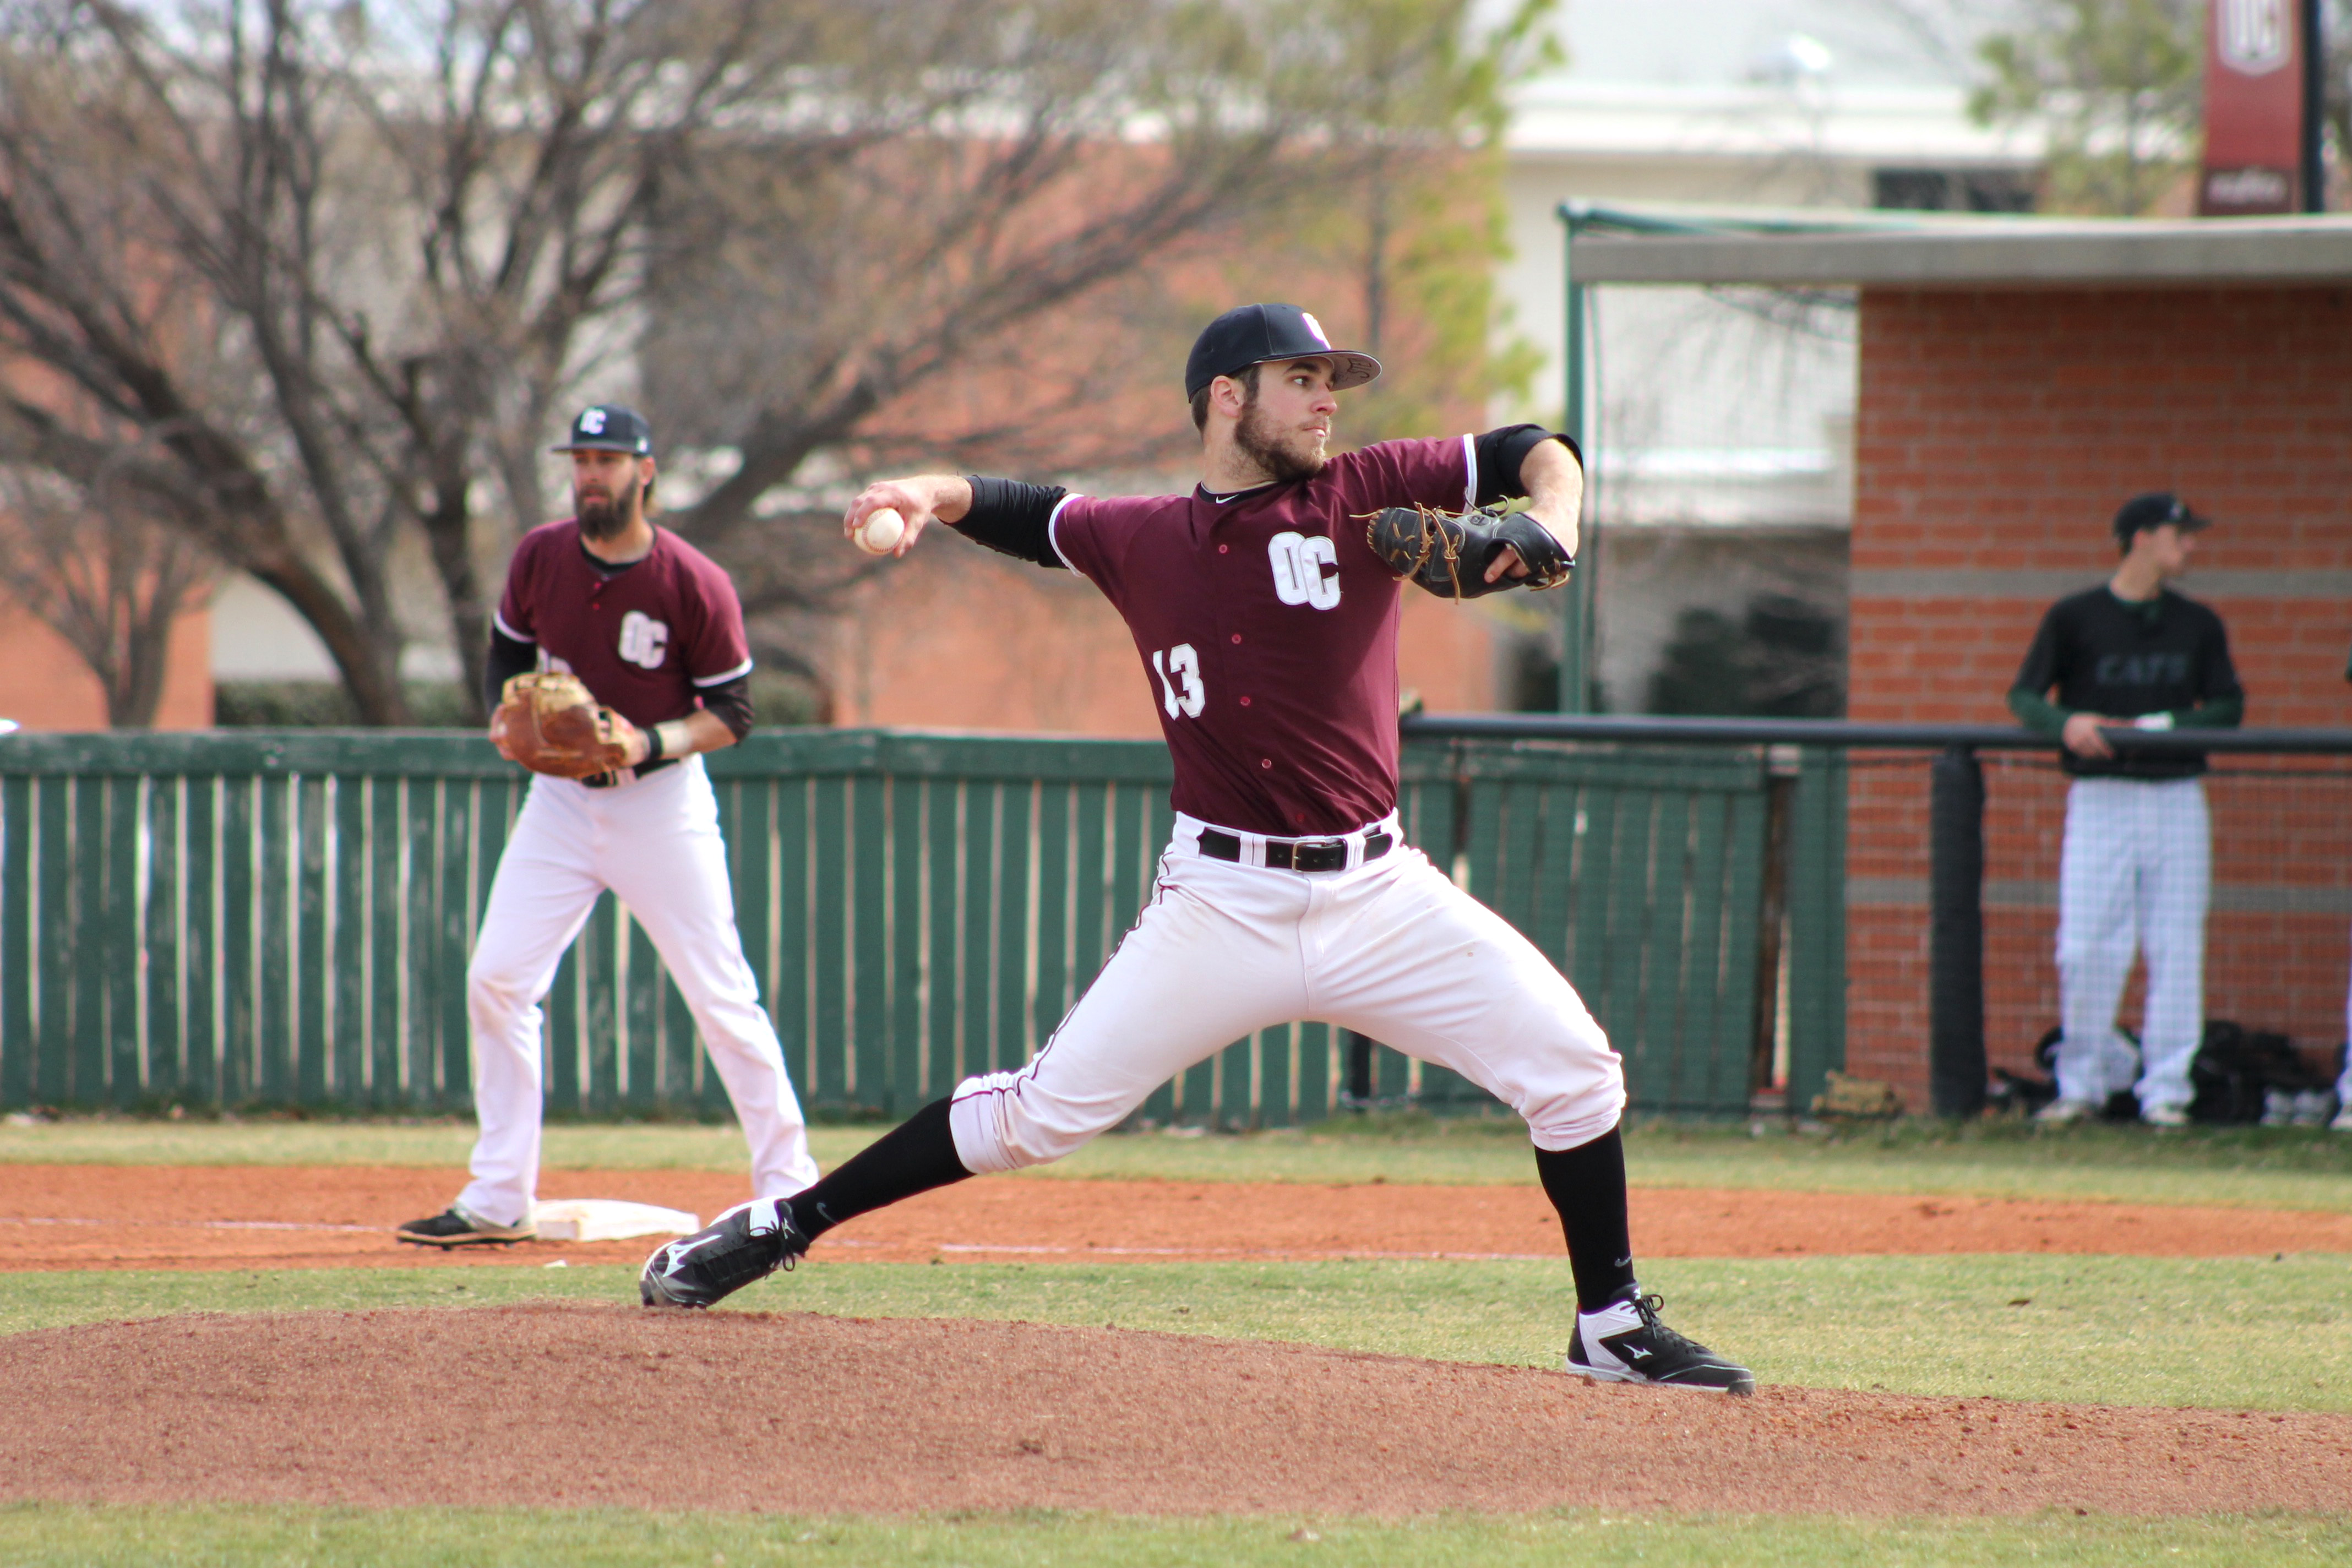 Jared Sterling pitches in the 3-game series against Northwest Missouri State Feb. 19-21. Photo by Allyson Hazelrigg.